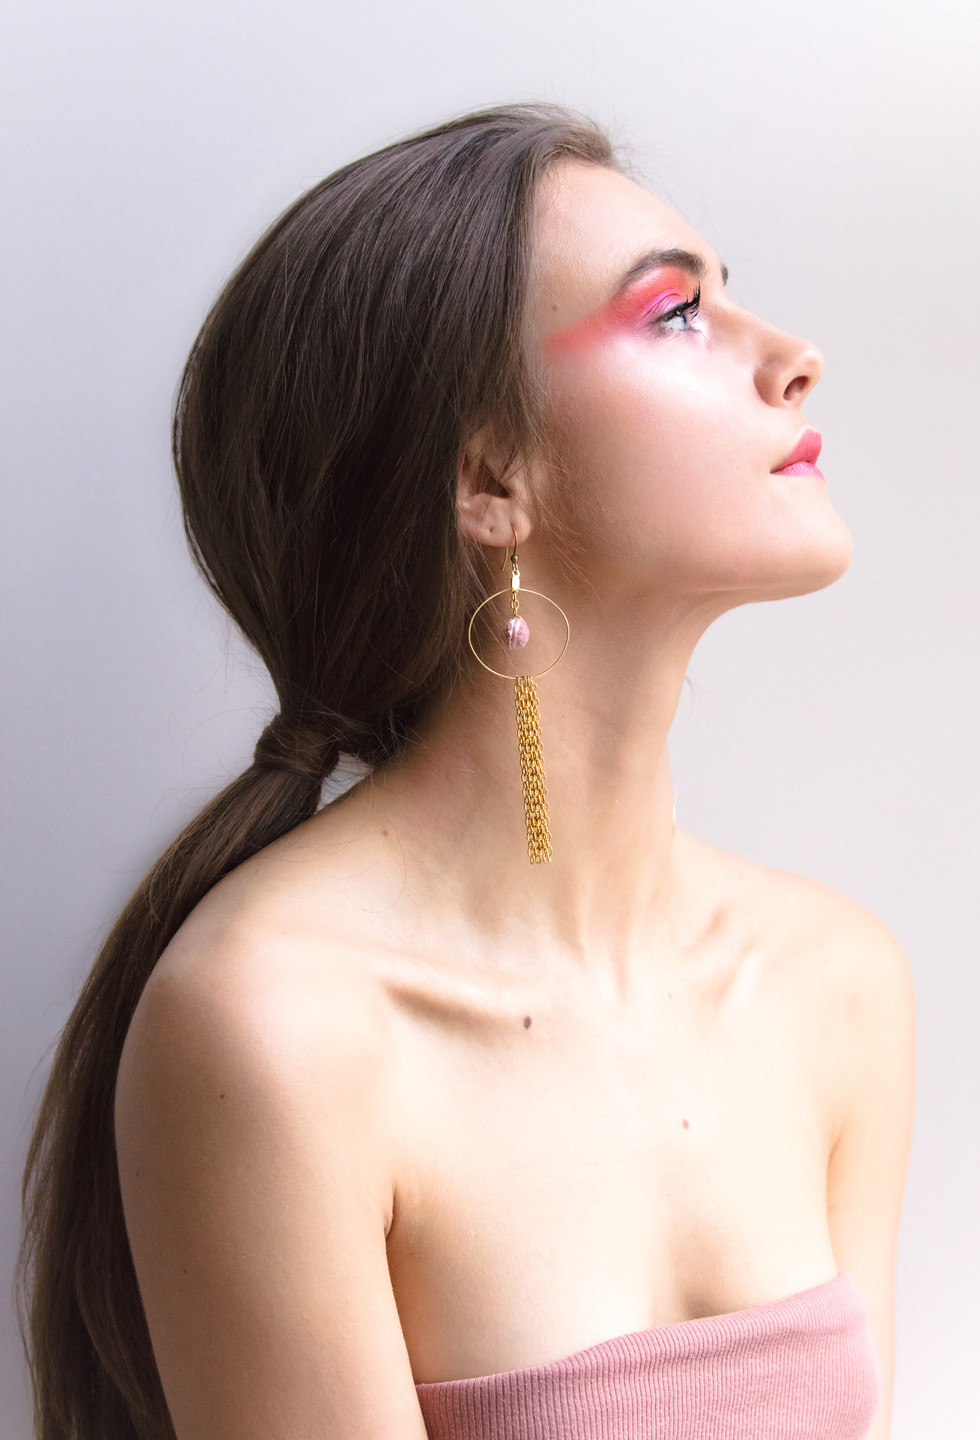 I created this portrait series from concept to final piece to showcase the accessories brand Cotton Crowd's Spring/Summer 2018 collection. This included designing and hand-making of the jewellery collection, idea generation for editorials, photography, styling, and editing the final pieces.   Model: Hannah Downey